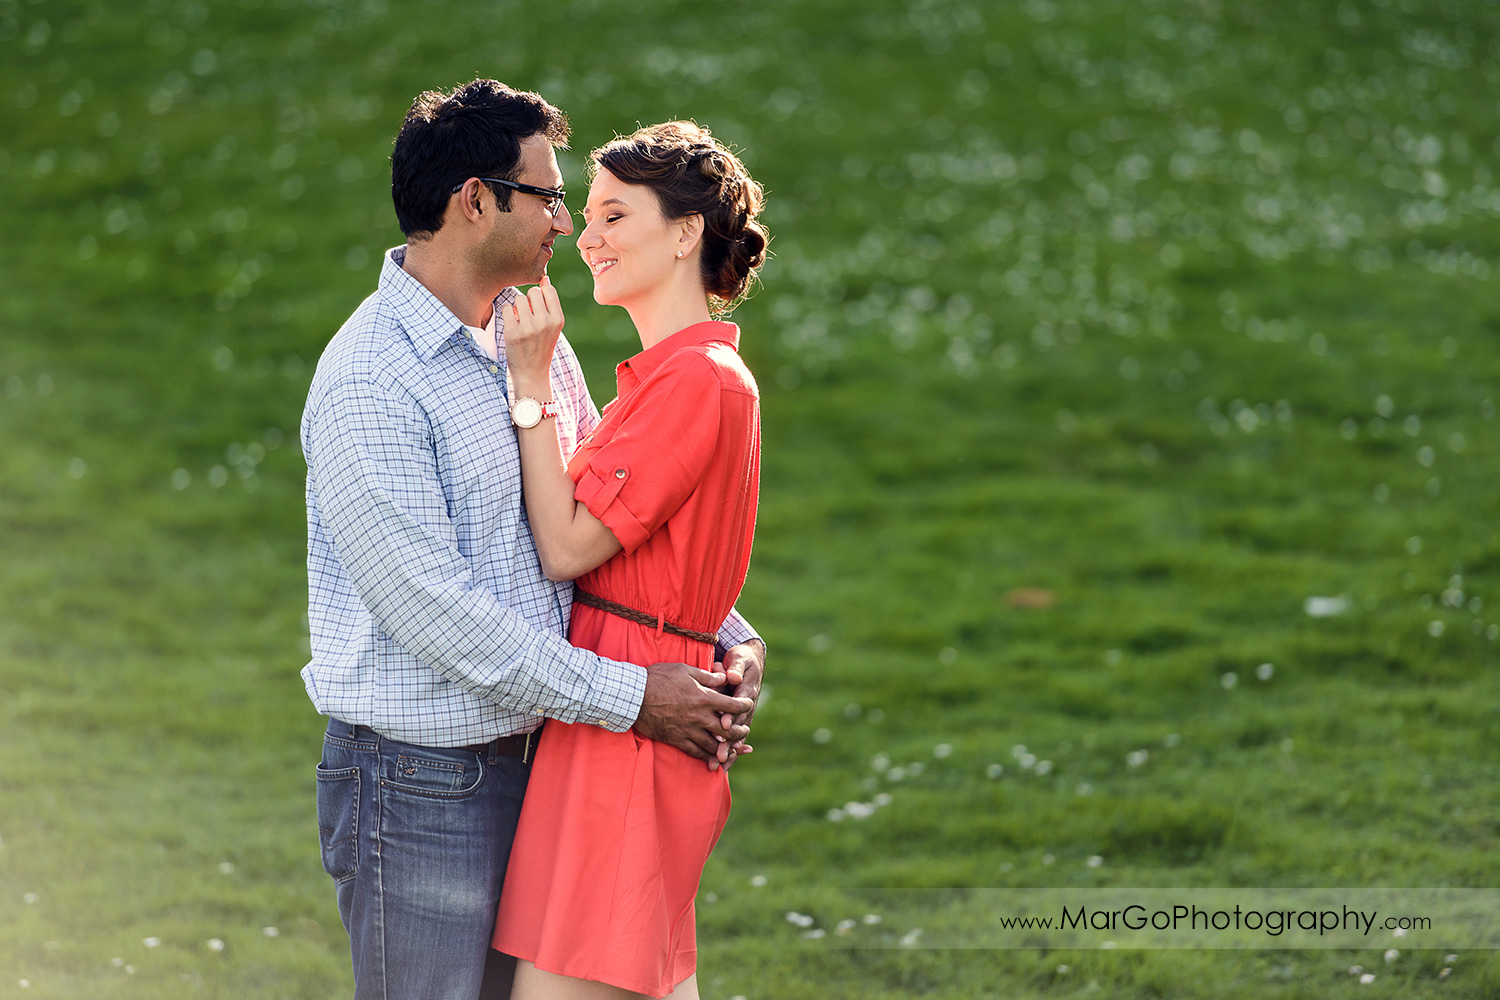 3/4 portarit of man in blue shirt and woman in red dress lokking at each other and standing on the grass during engagement session at San Francisco Legion of Honor